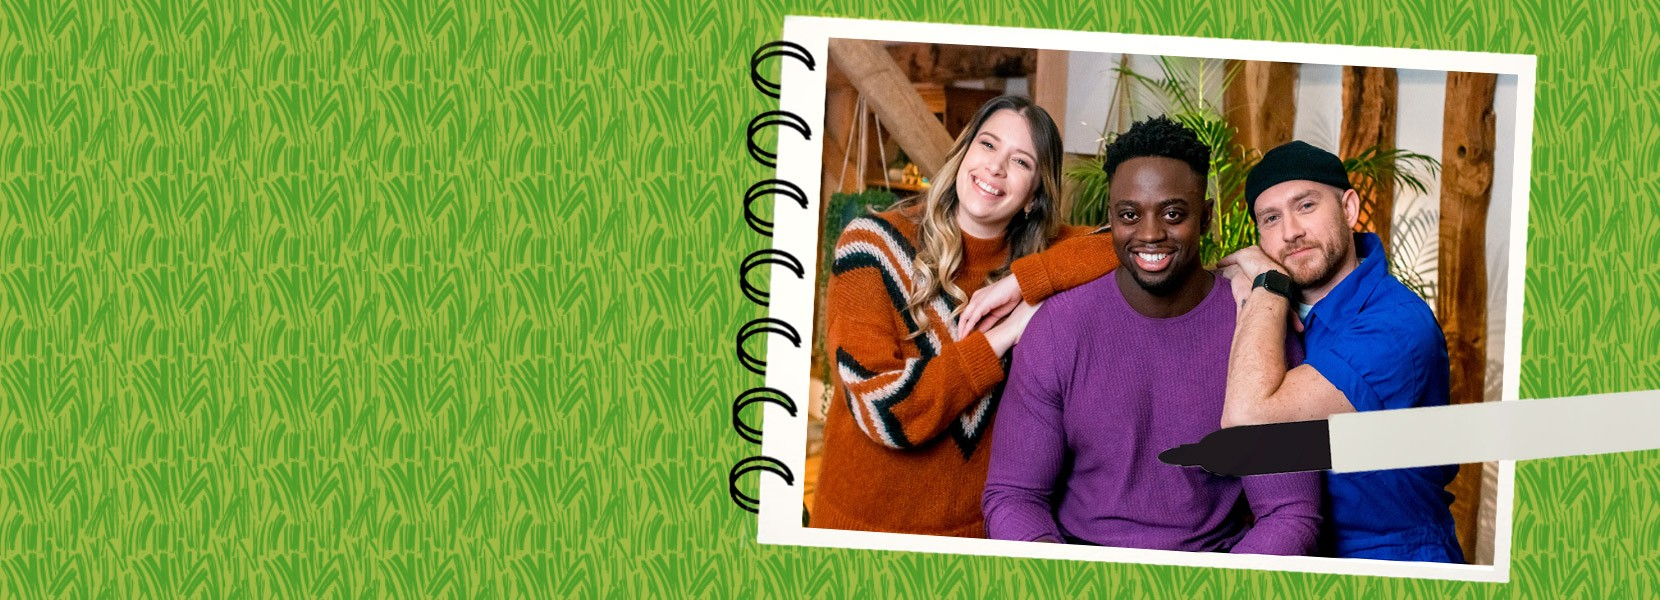 Earth Sketch Pad banner showing the Ricky Martin, Lorna Harrington and Musa Drammeh